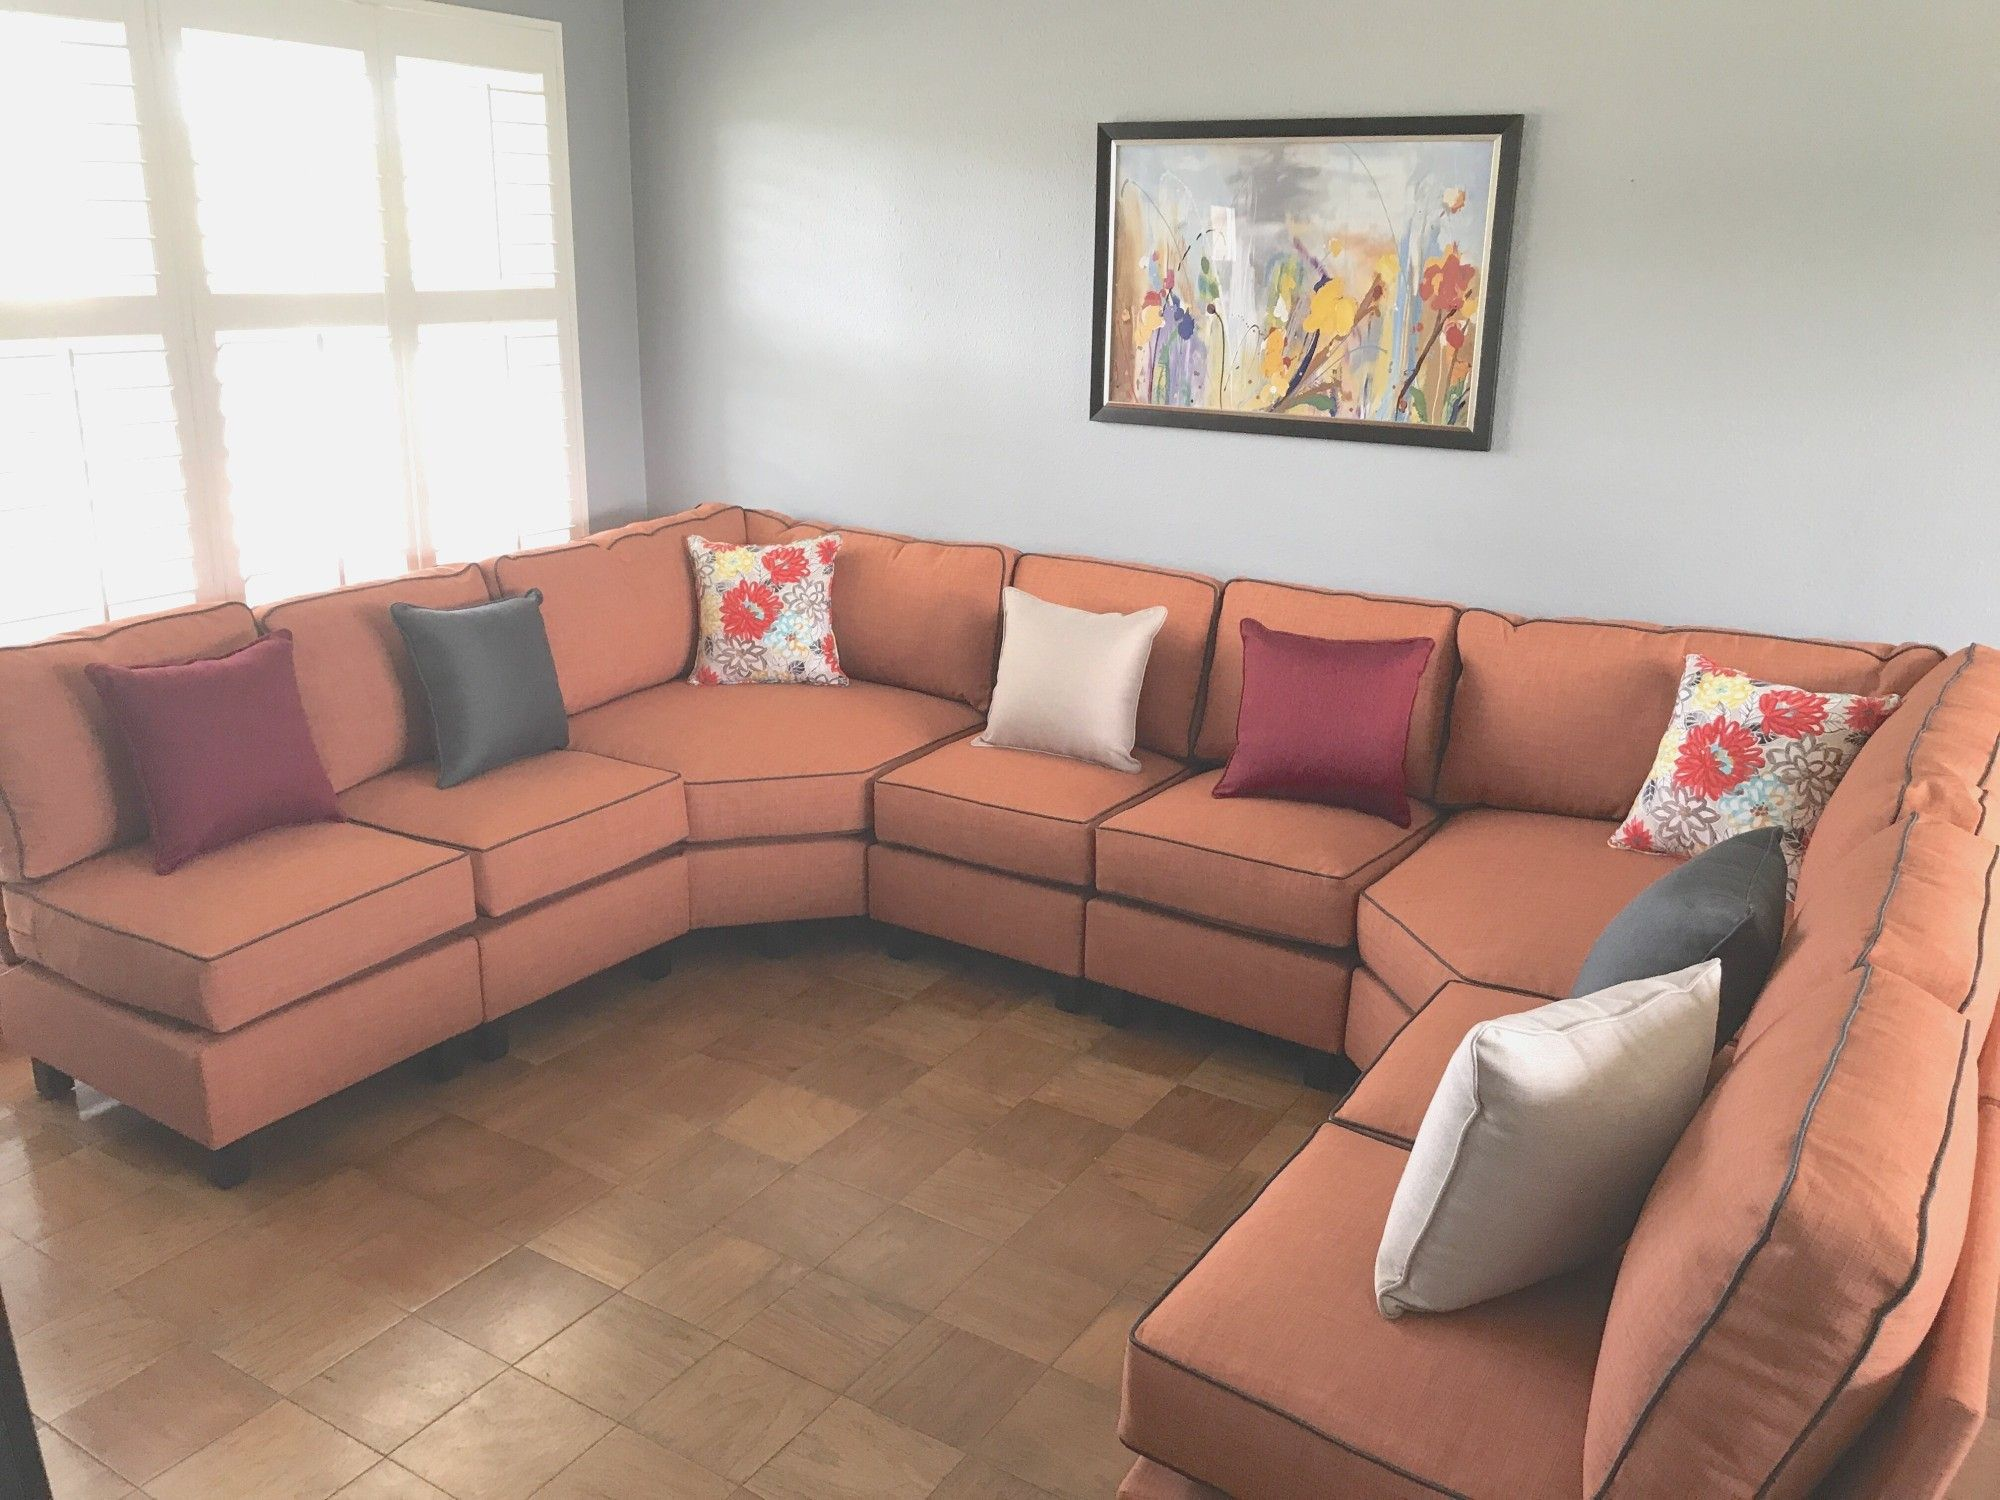 8 Way Hand Tied Sofa Manufacturers   8 Way Hand Tied Leather Sofa  Manufacturers, 8